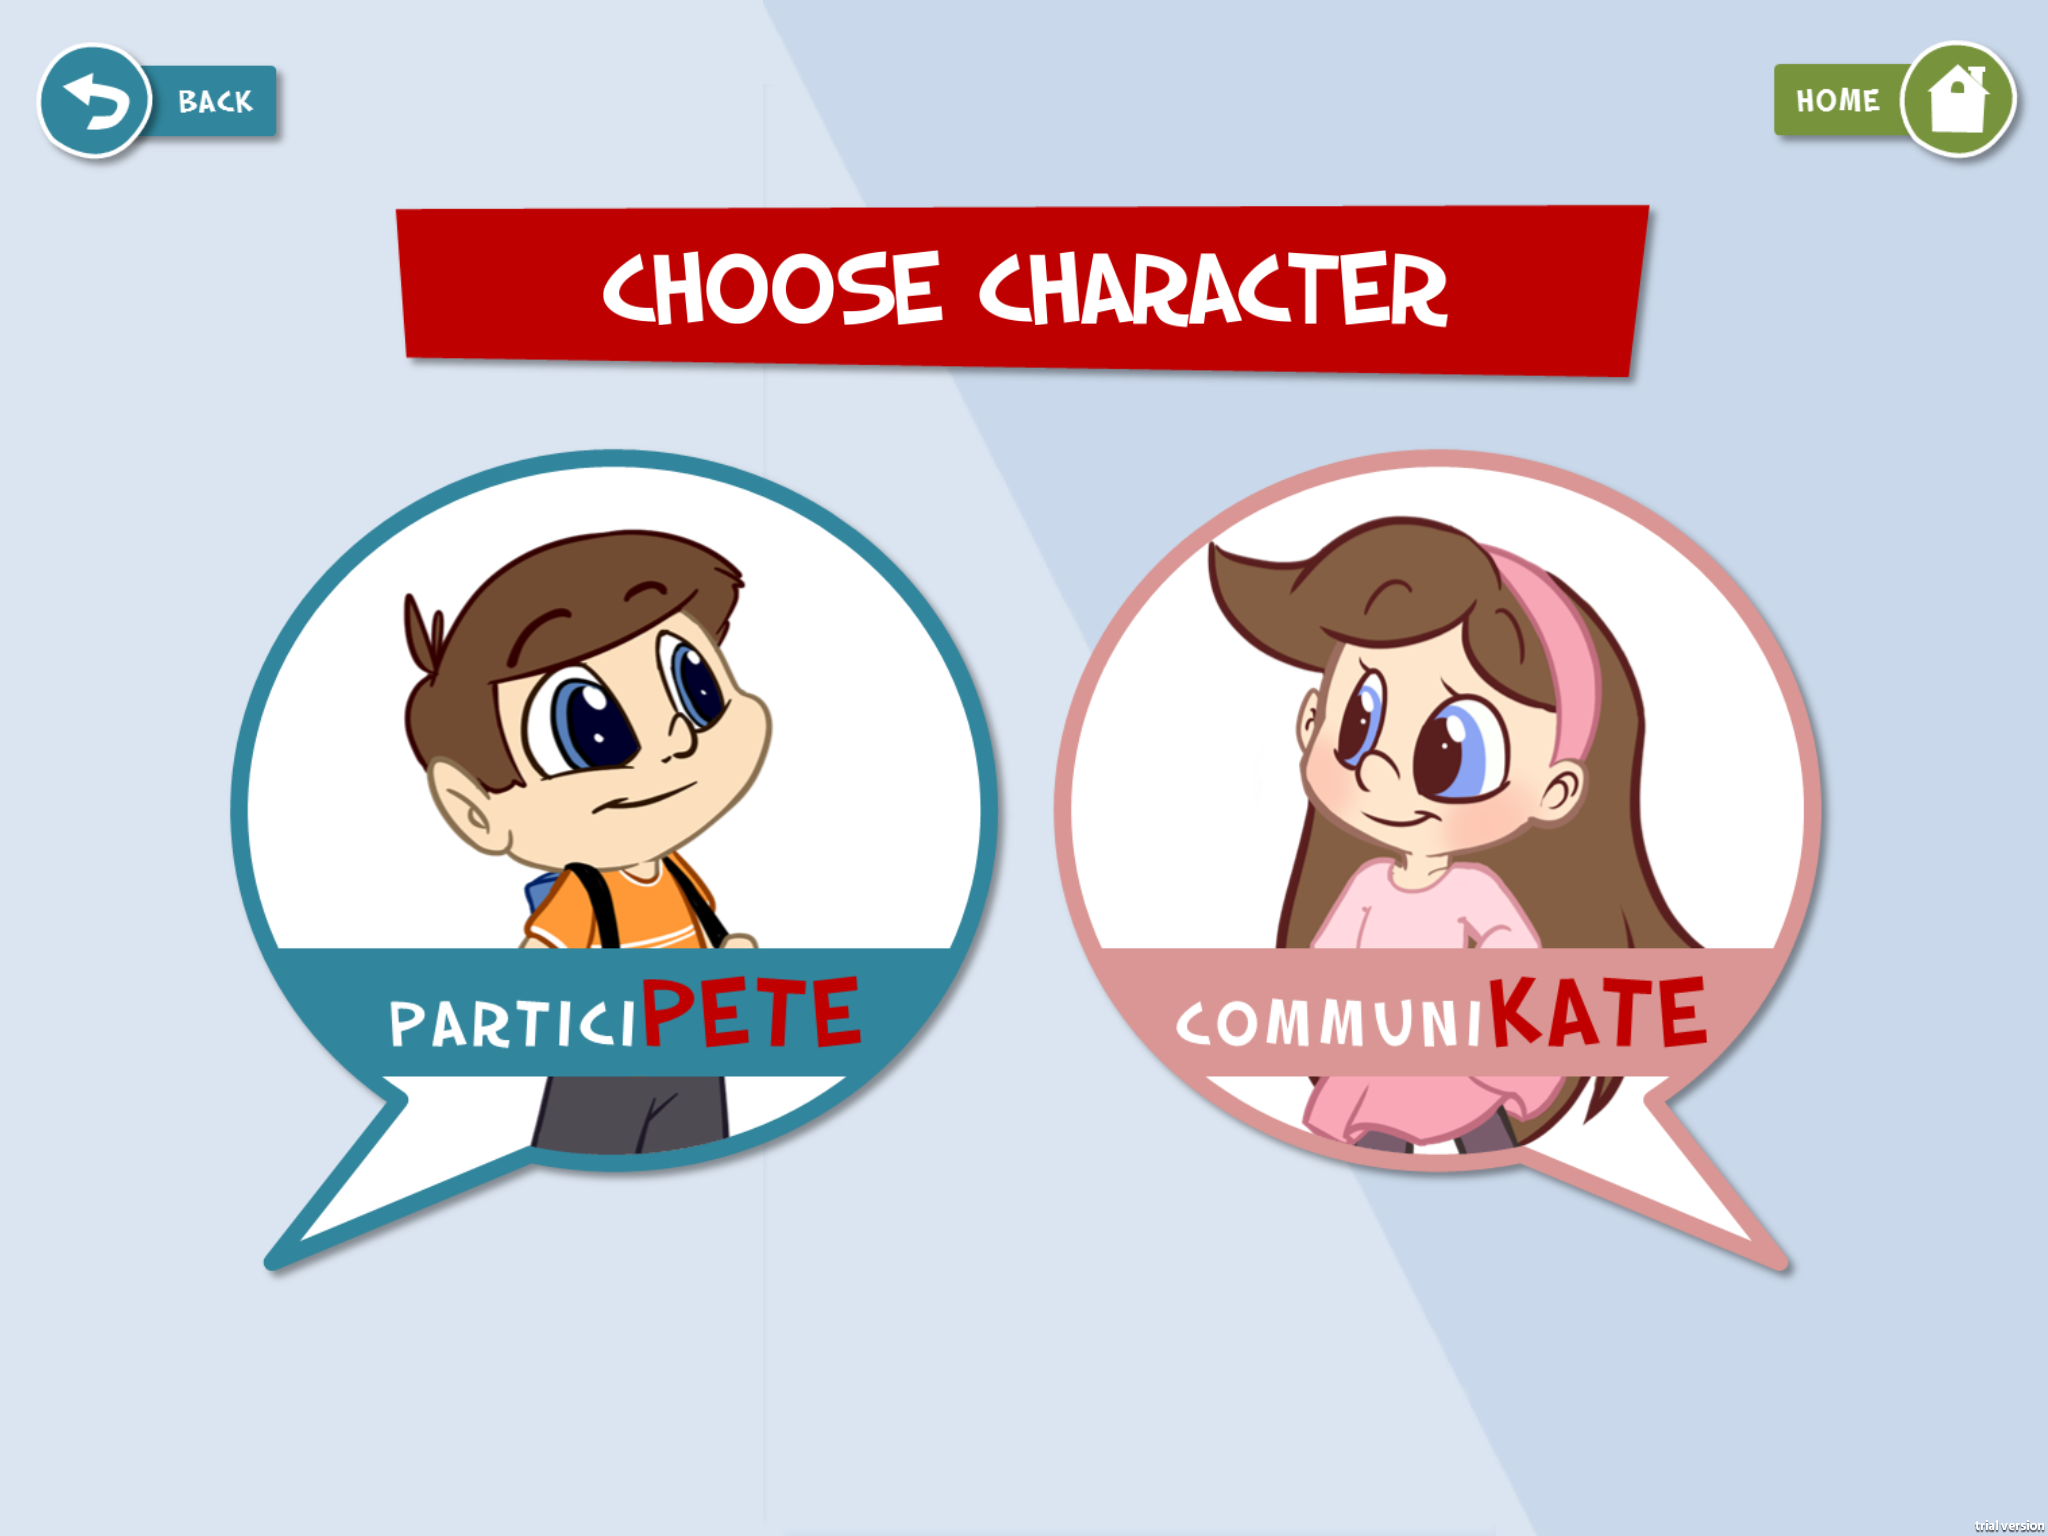 Play as ParticiPete or CommuniKate